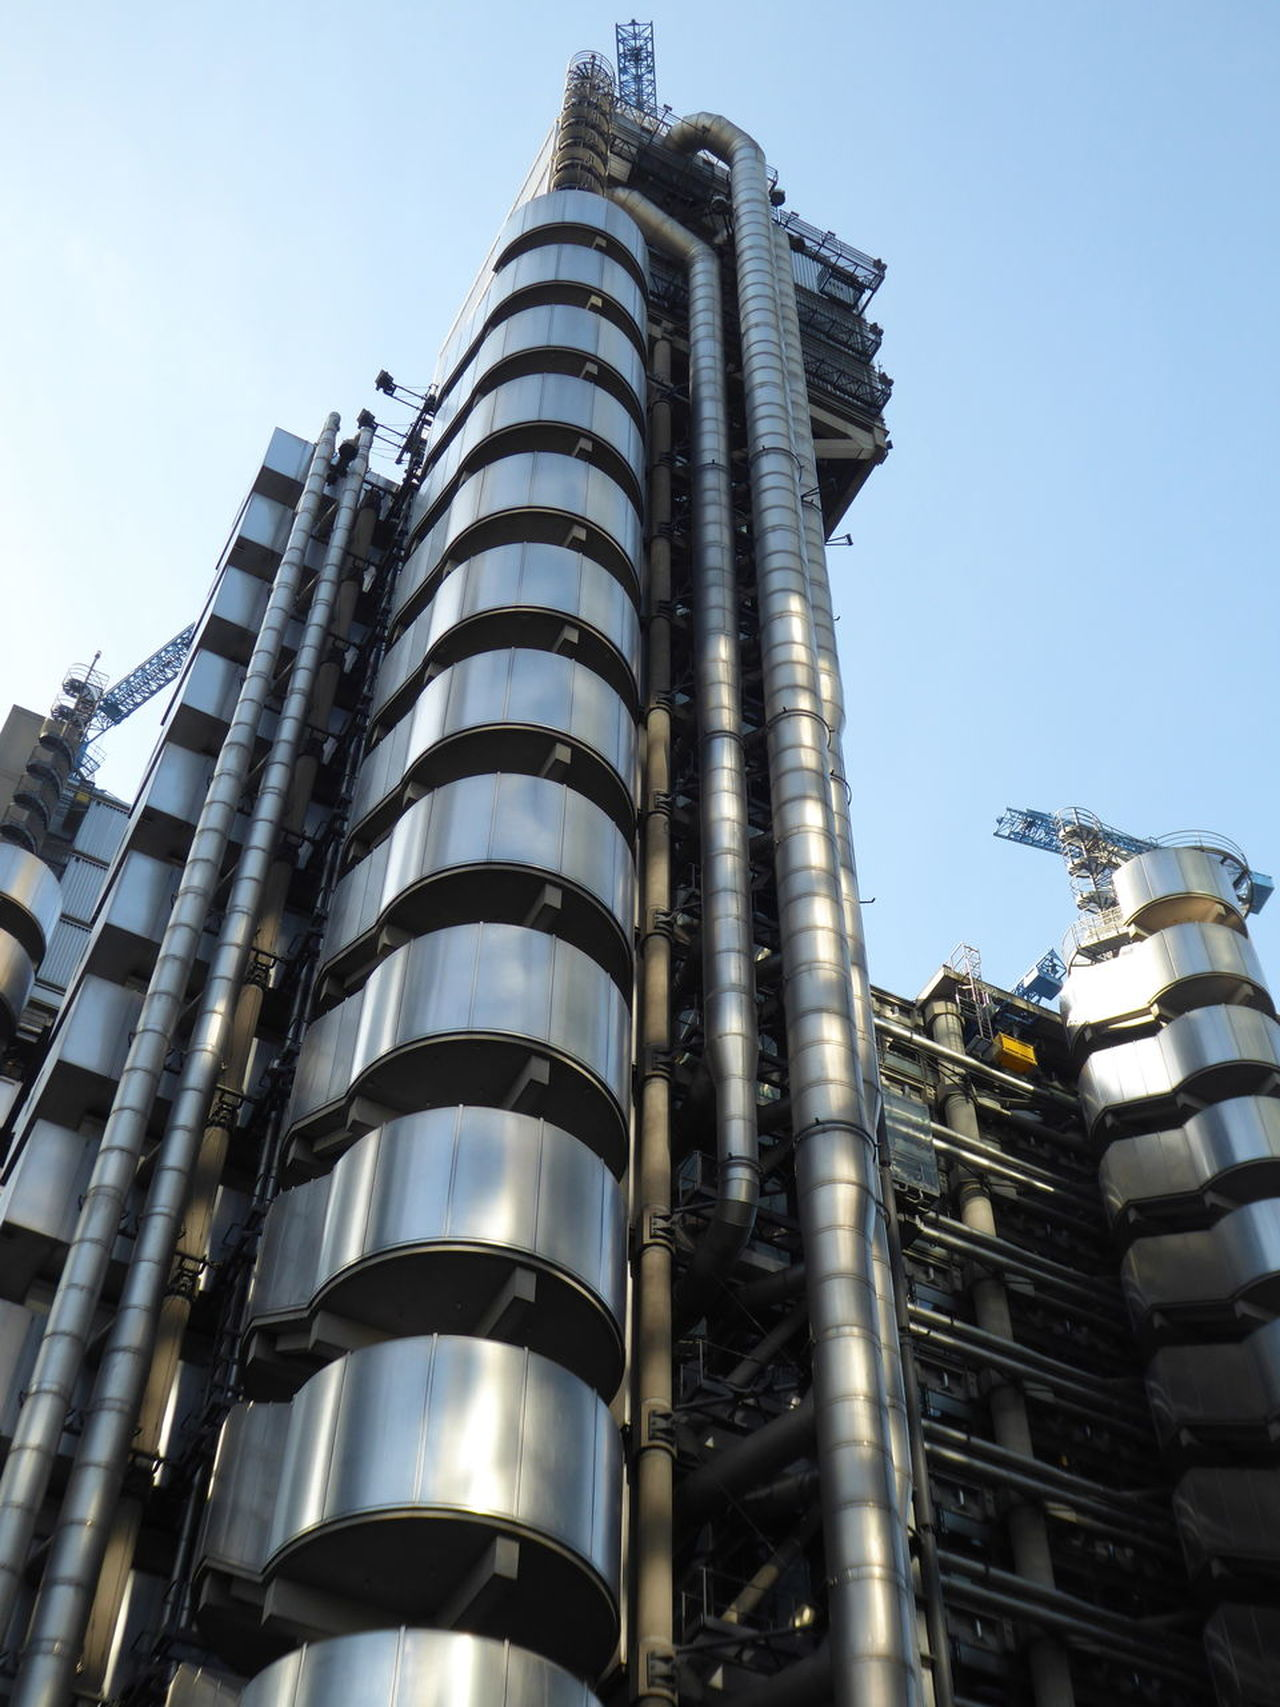 Architecture Brexit Building Exterior Built Structure City Finances Lloyds Building Lloyds Of London London Financial Centre Low Angle View Metal Modern No People Sky Skyscraper Tall - High Tower Travel Destinations World Finances